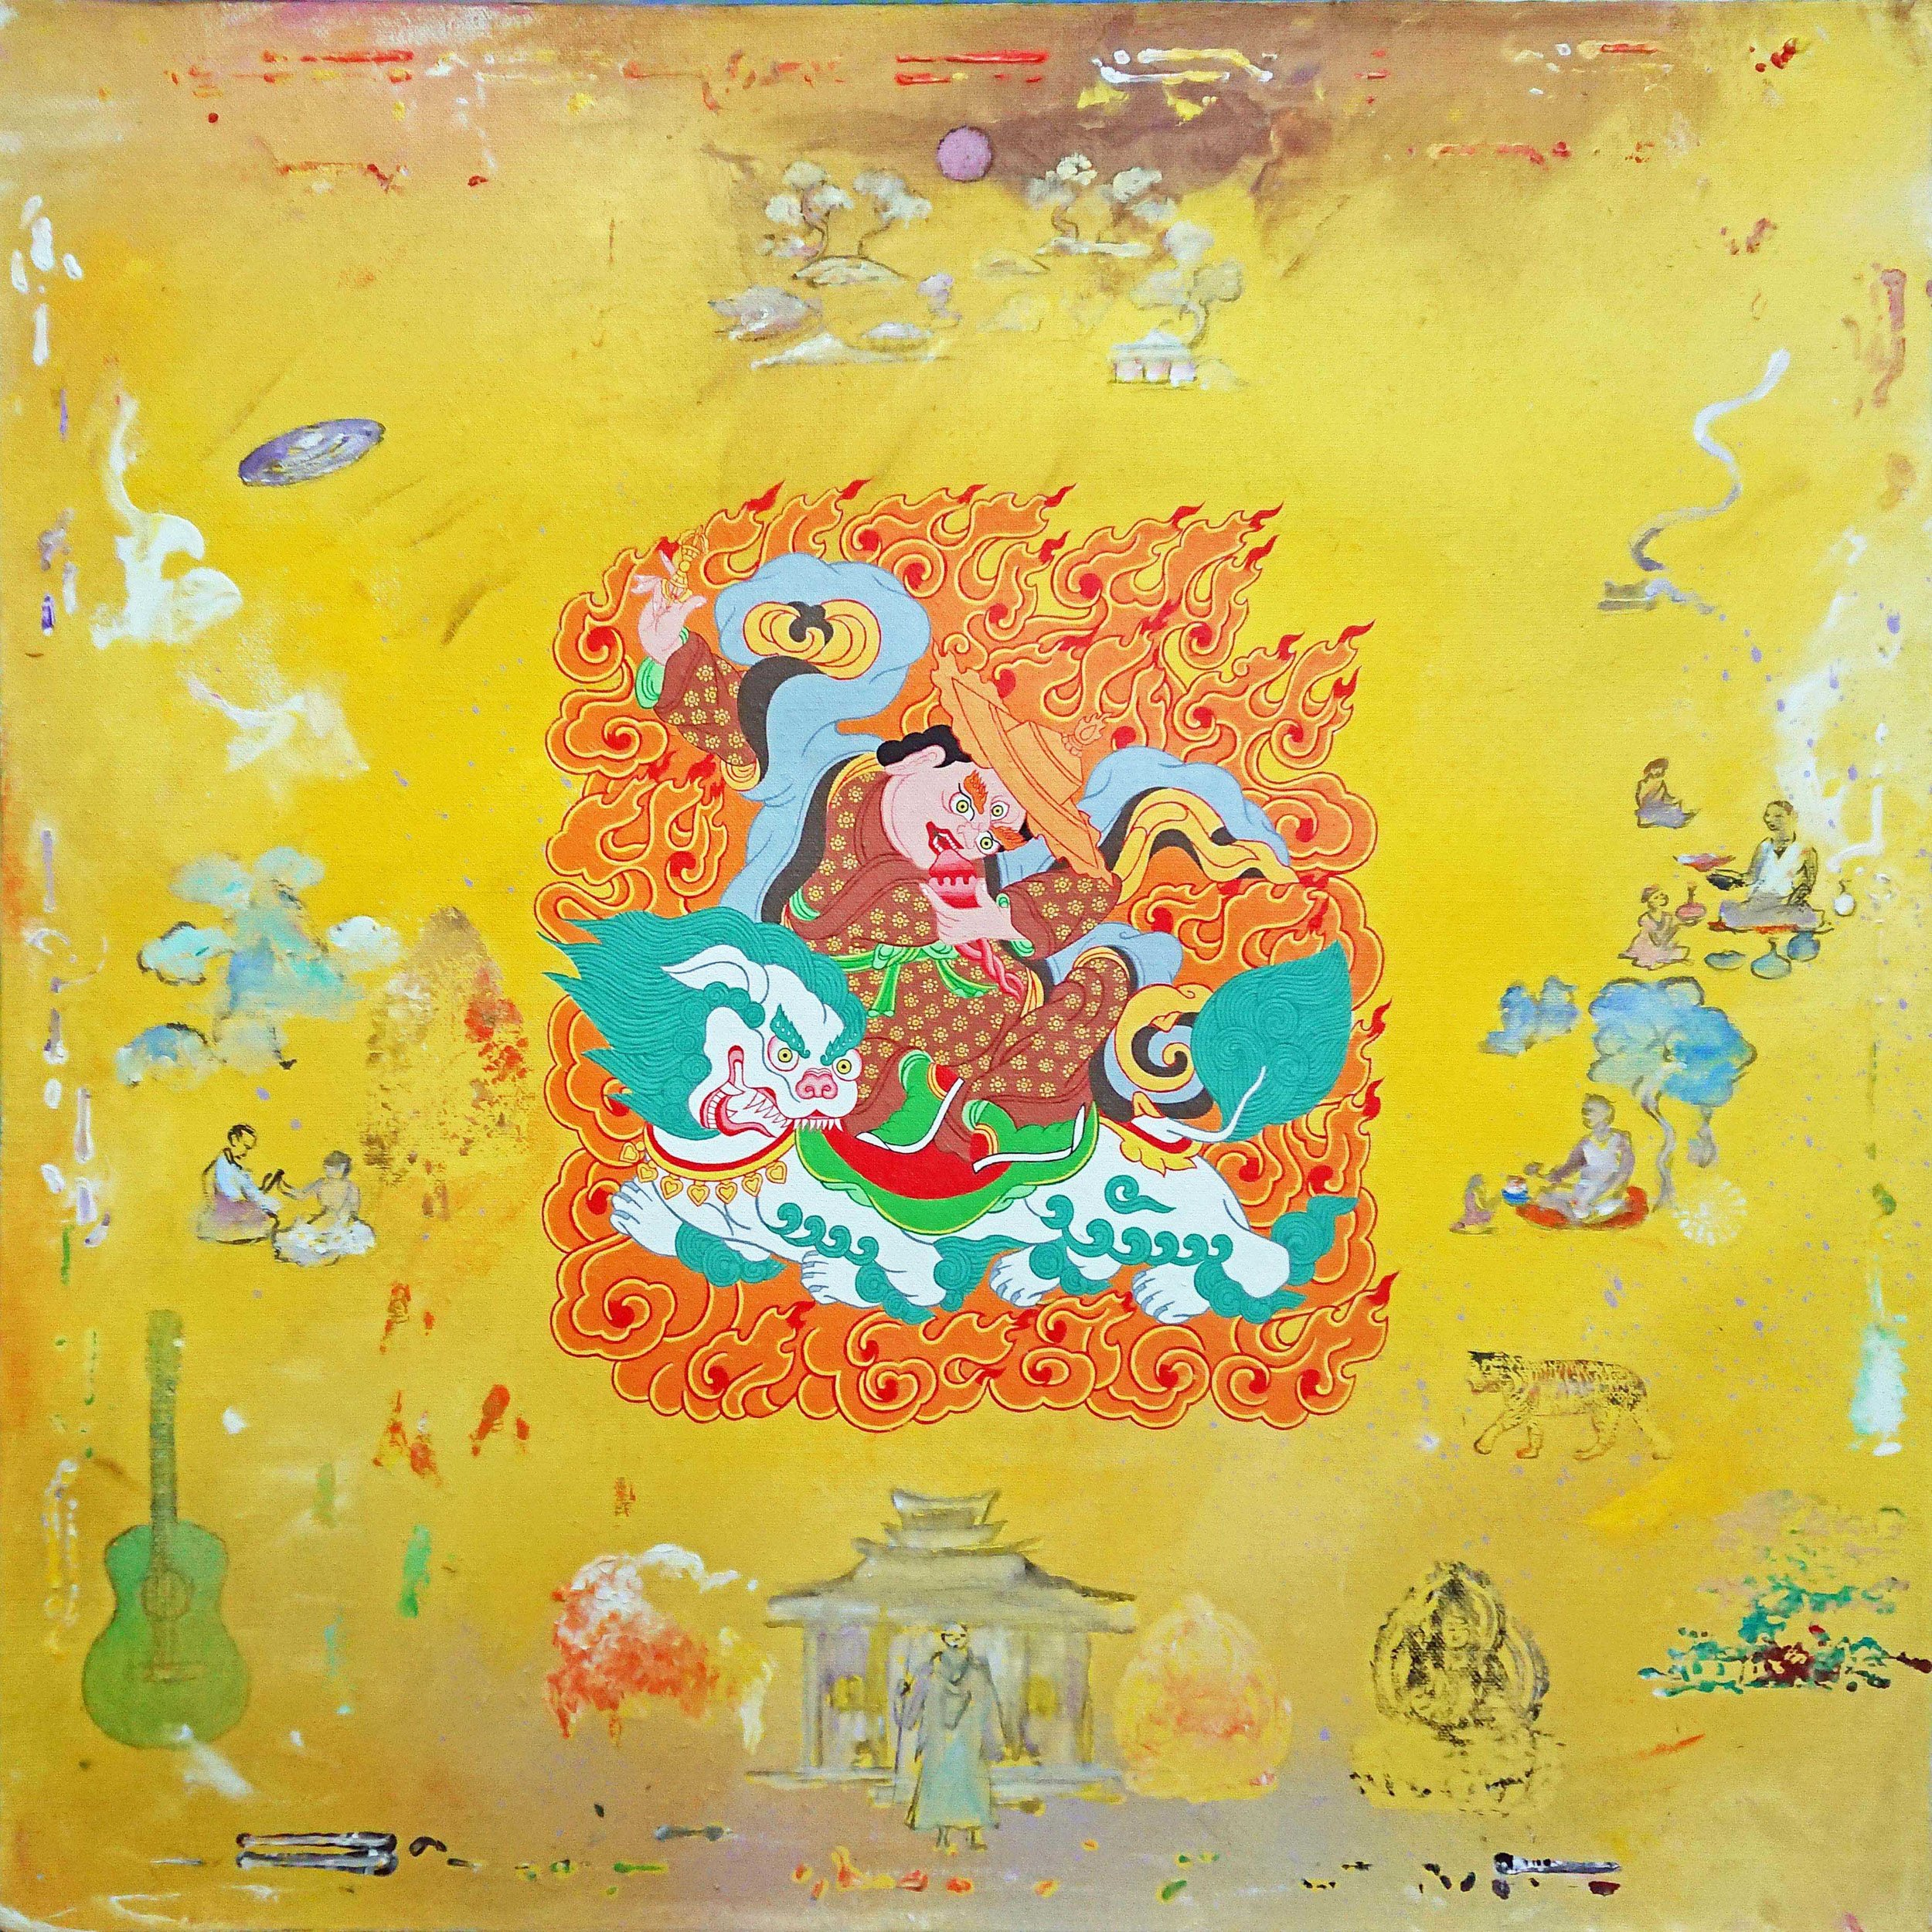 Dorje Lepa. 2019. Acrylic on canvas (with Daniel Bogunovic), 60 x 60 cm. $2,000 SOLD